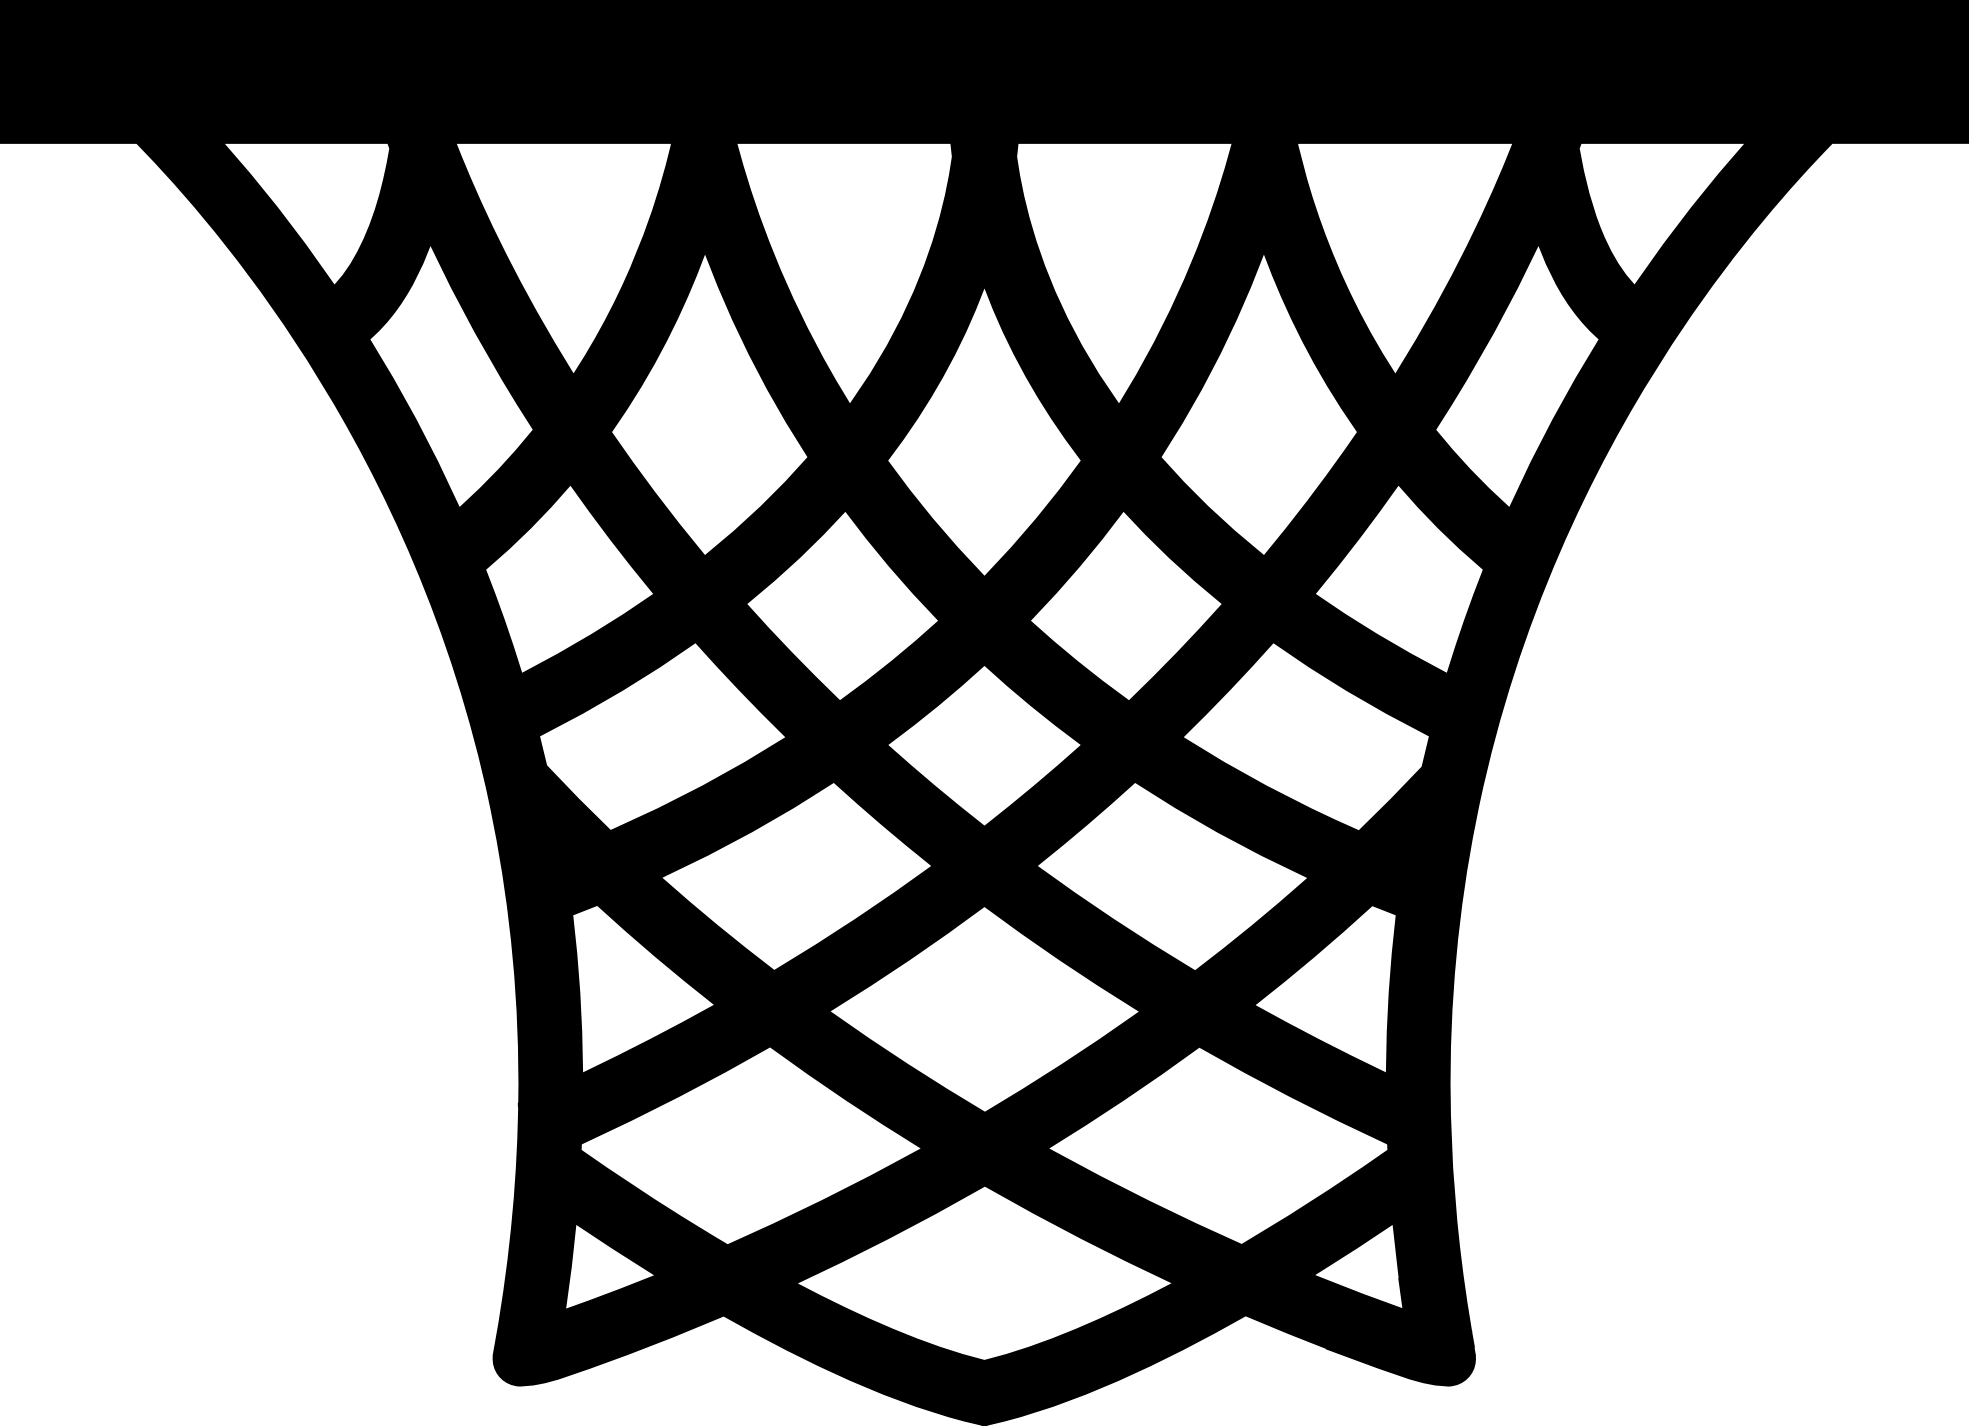 Basketball backboard clipart black and white banner stock 28+ Collection of Basketball Goal Clipart Black And White | High ... banner stock